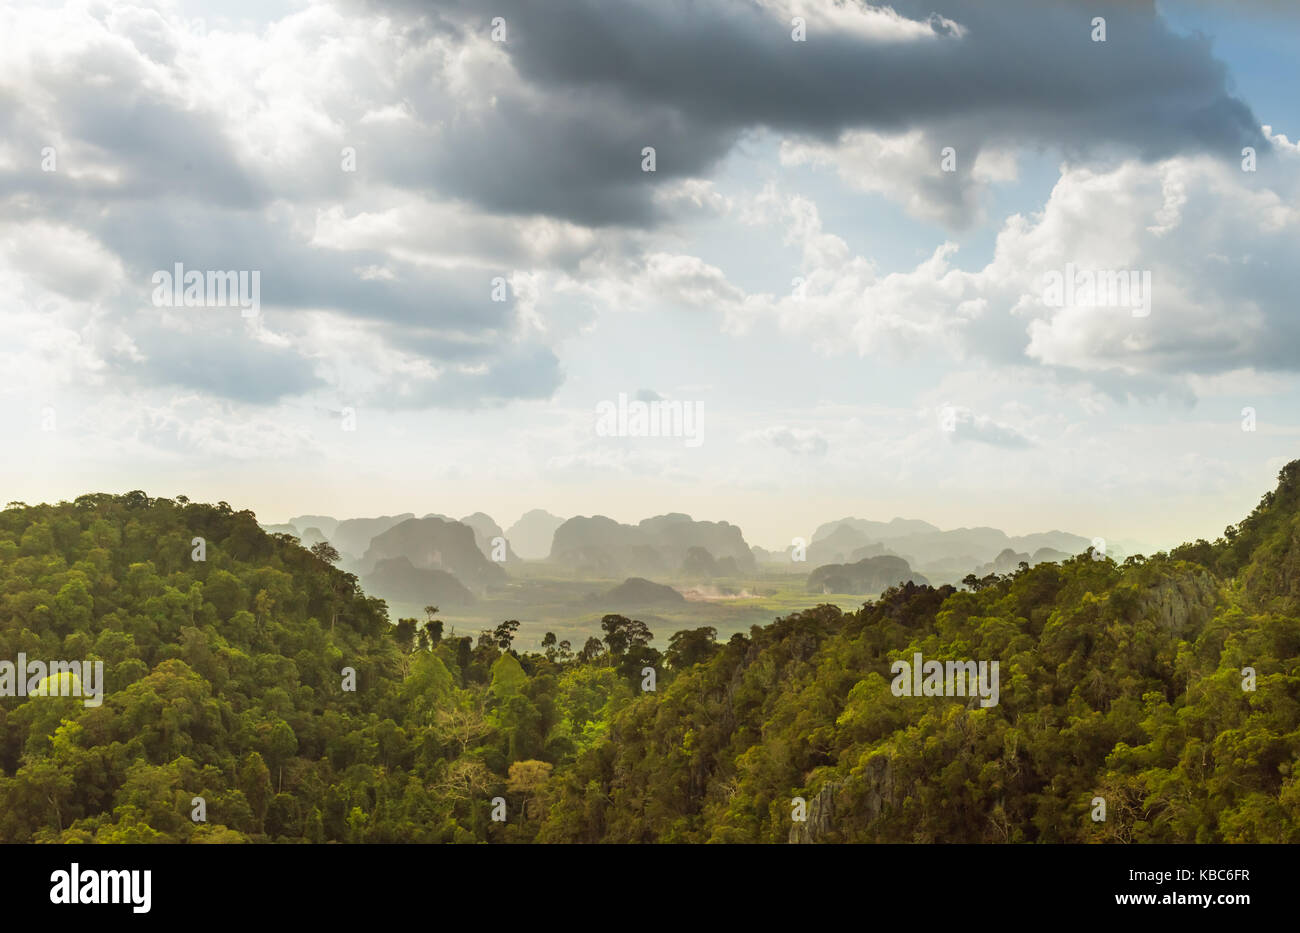 rain forest in Thailand - Stock Image